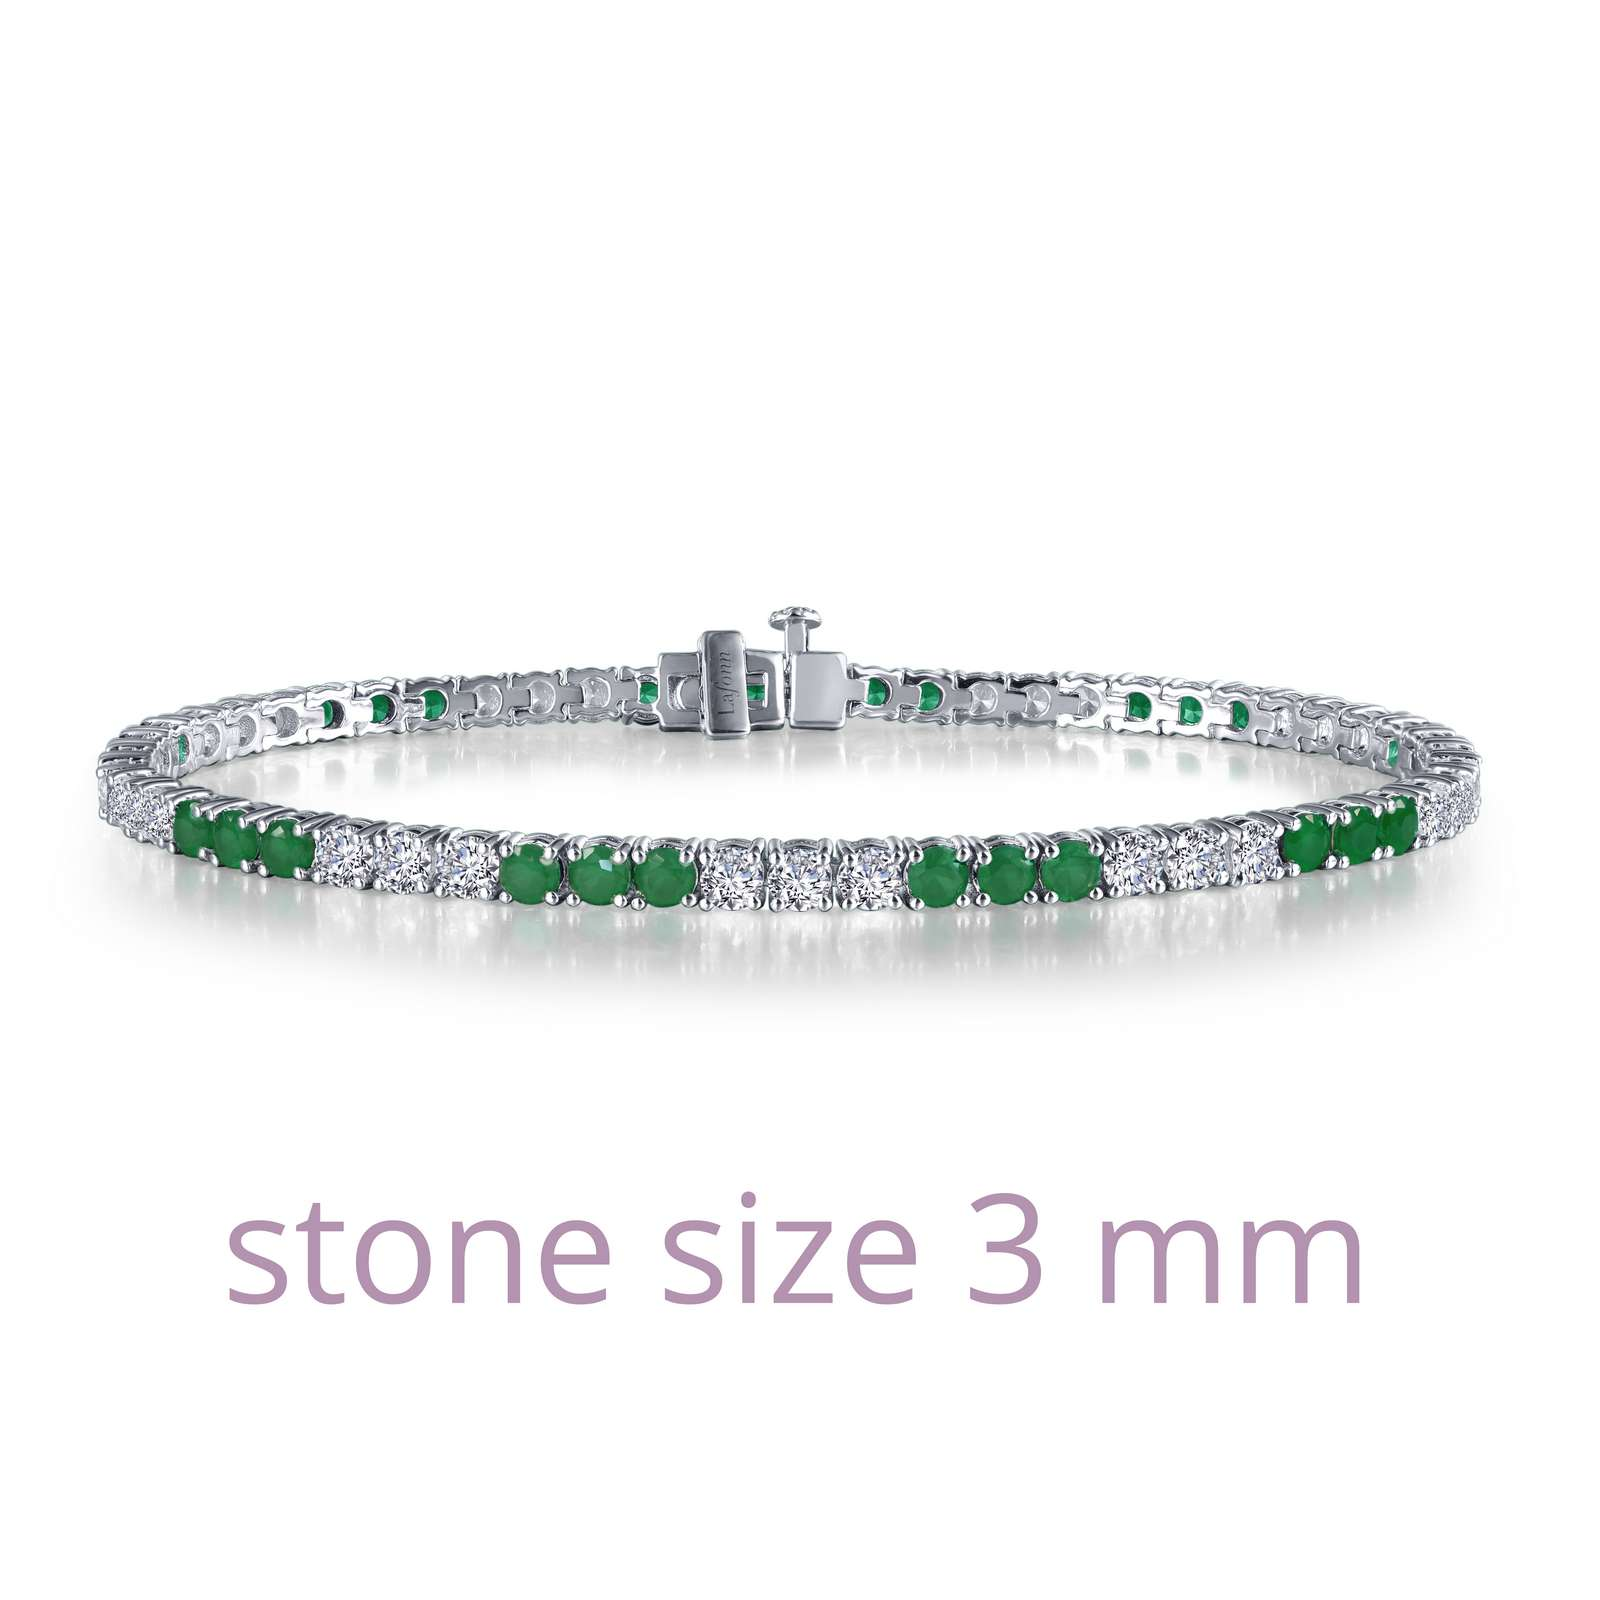 Classic Emerald Platinum Bonded Bracelet - Timeless classics for everyday wear. This sparkly tennis bracelet is set with Lafonn's signature Lassaire simulated diamonds and simulated emeralds in sterling silver bonded with Platinum Bonded. .